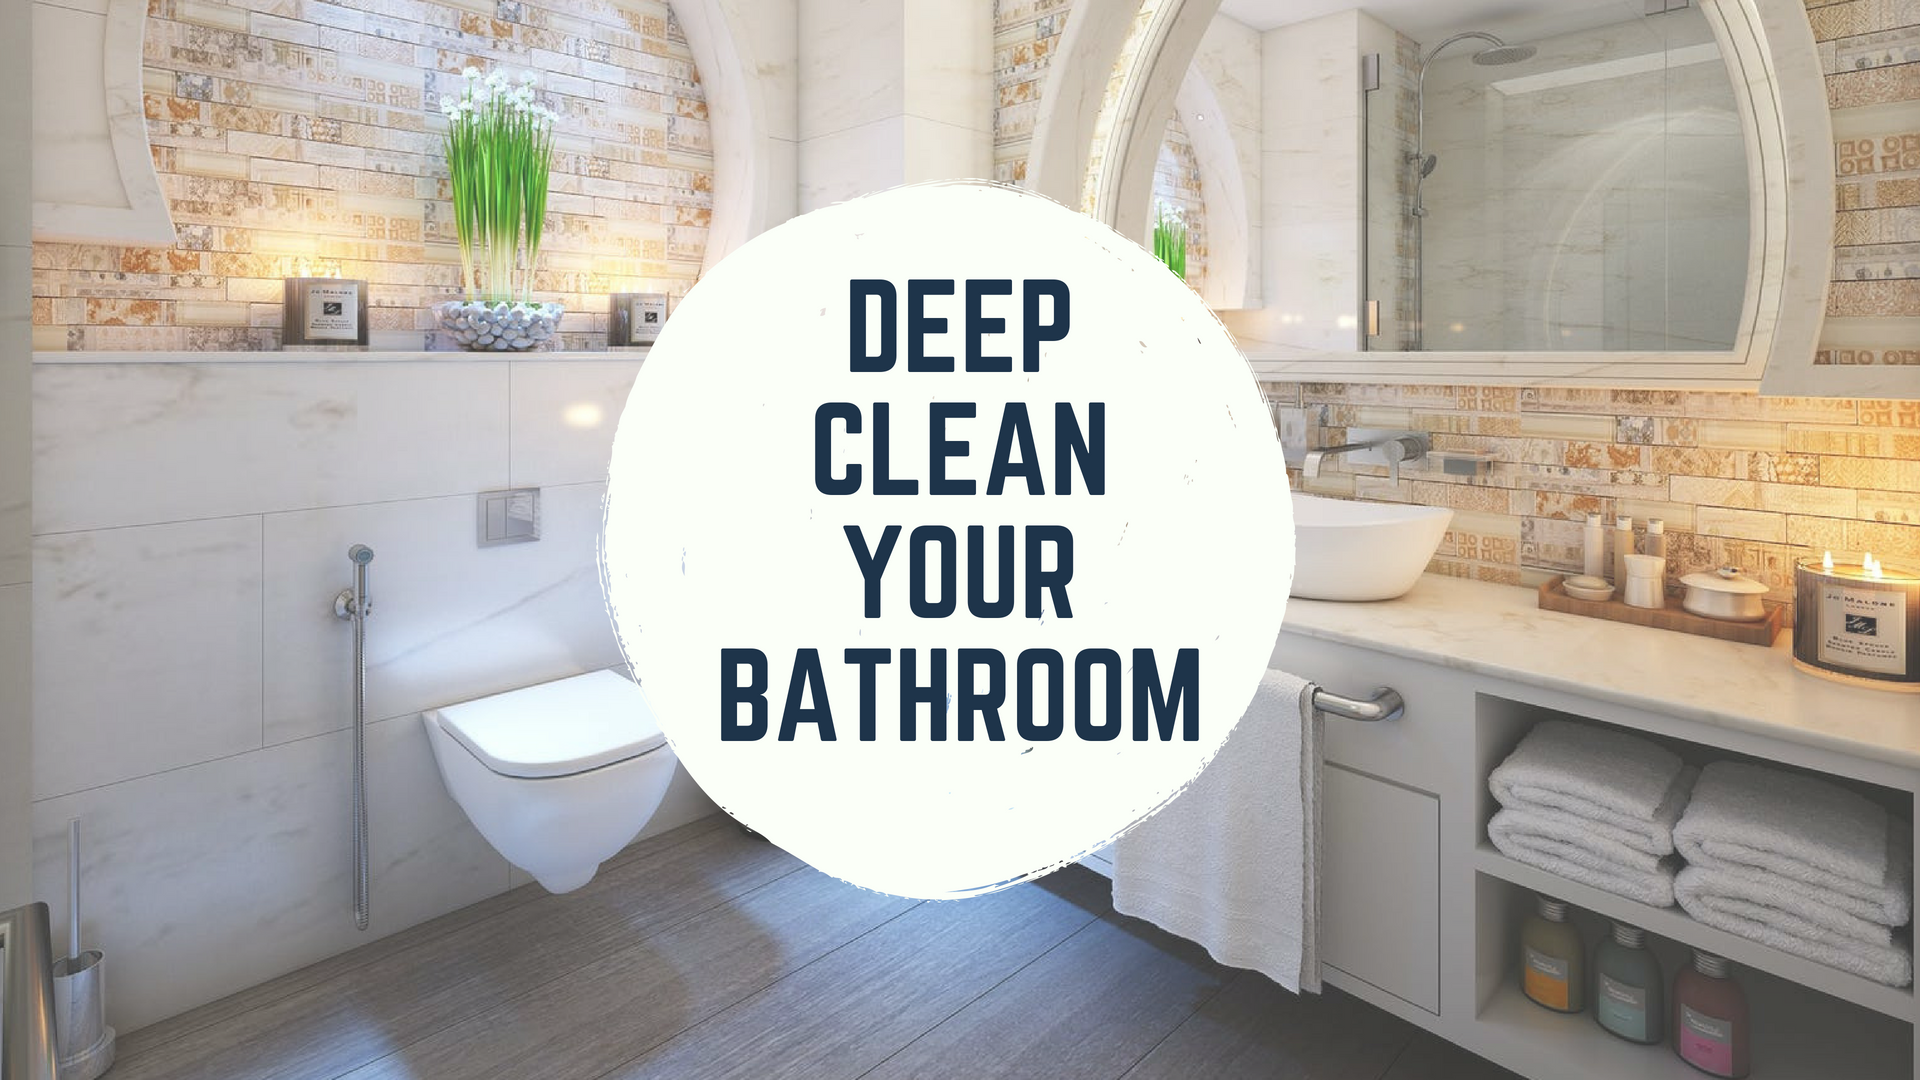 15 Important Tips On How To Deep Clean Your Bathroom